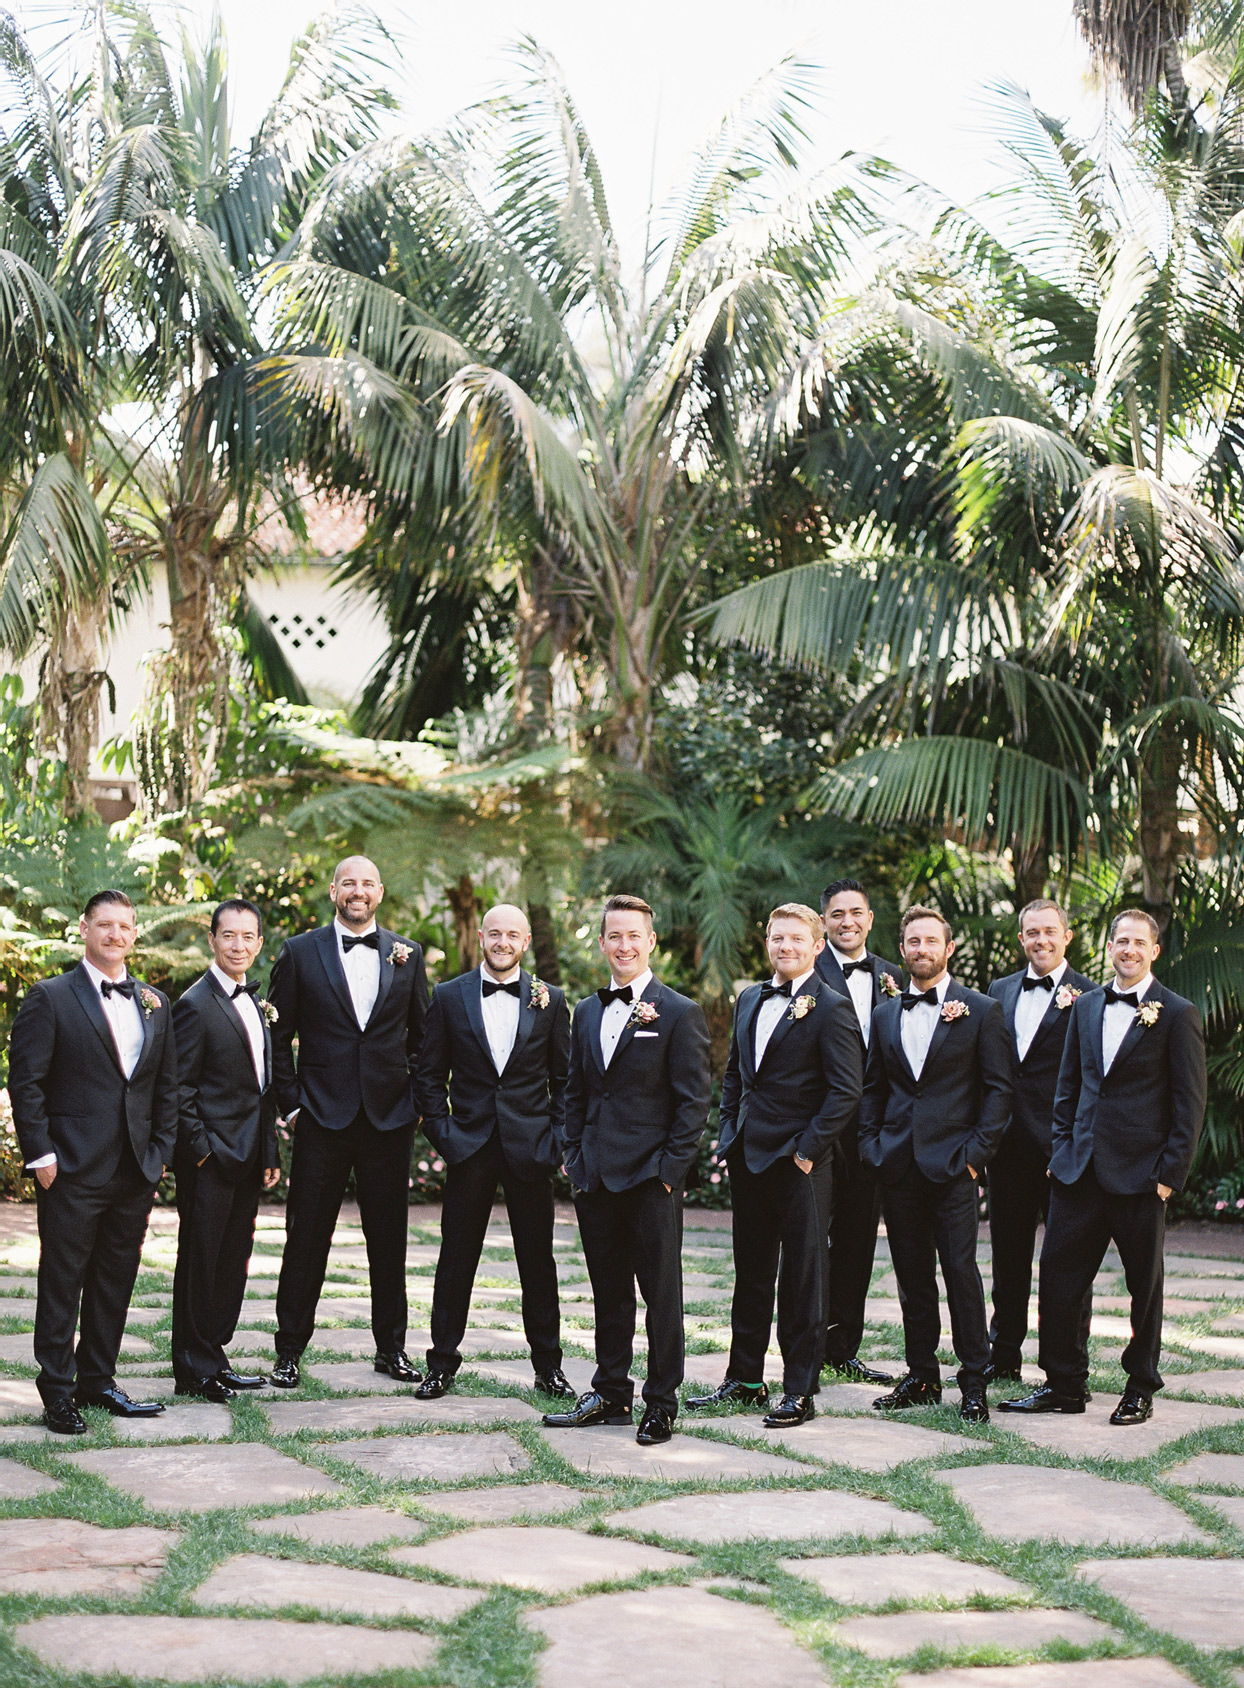 groom with nine groomsmen all wearing black tuxedos with bowties